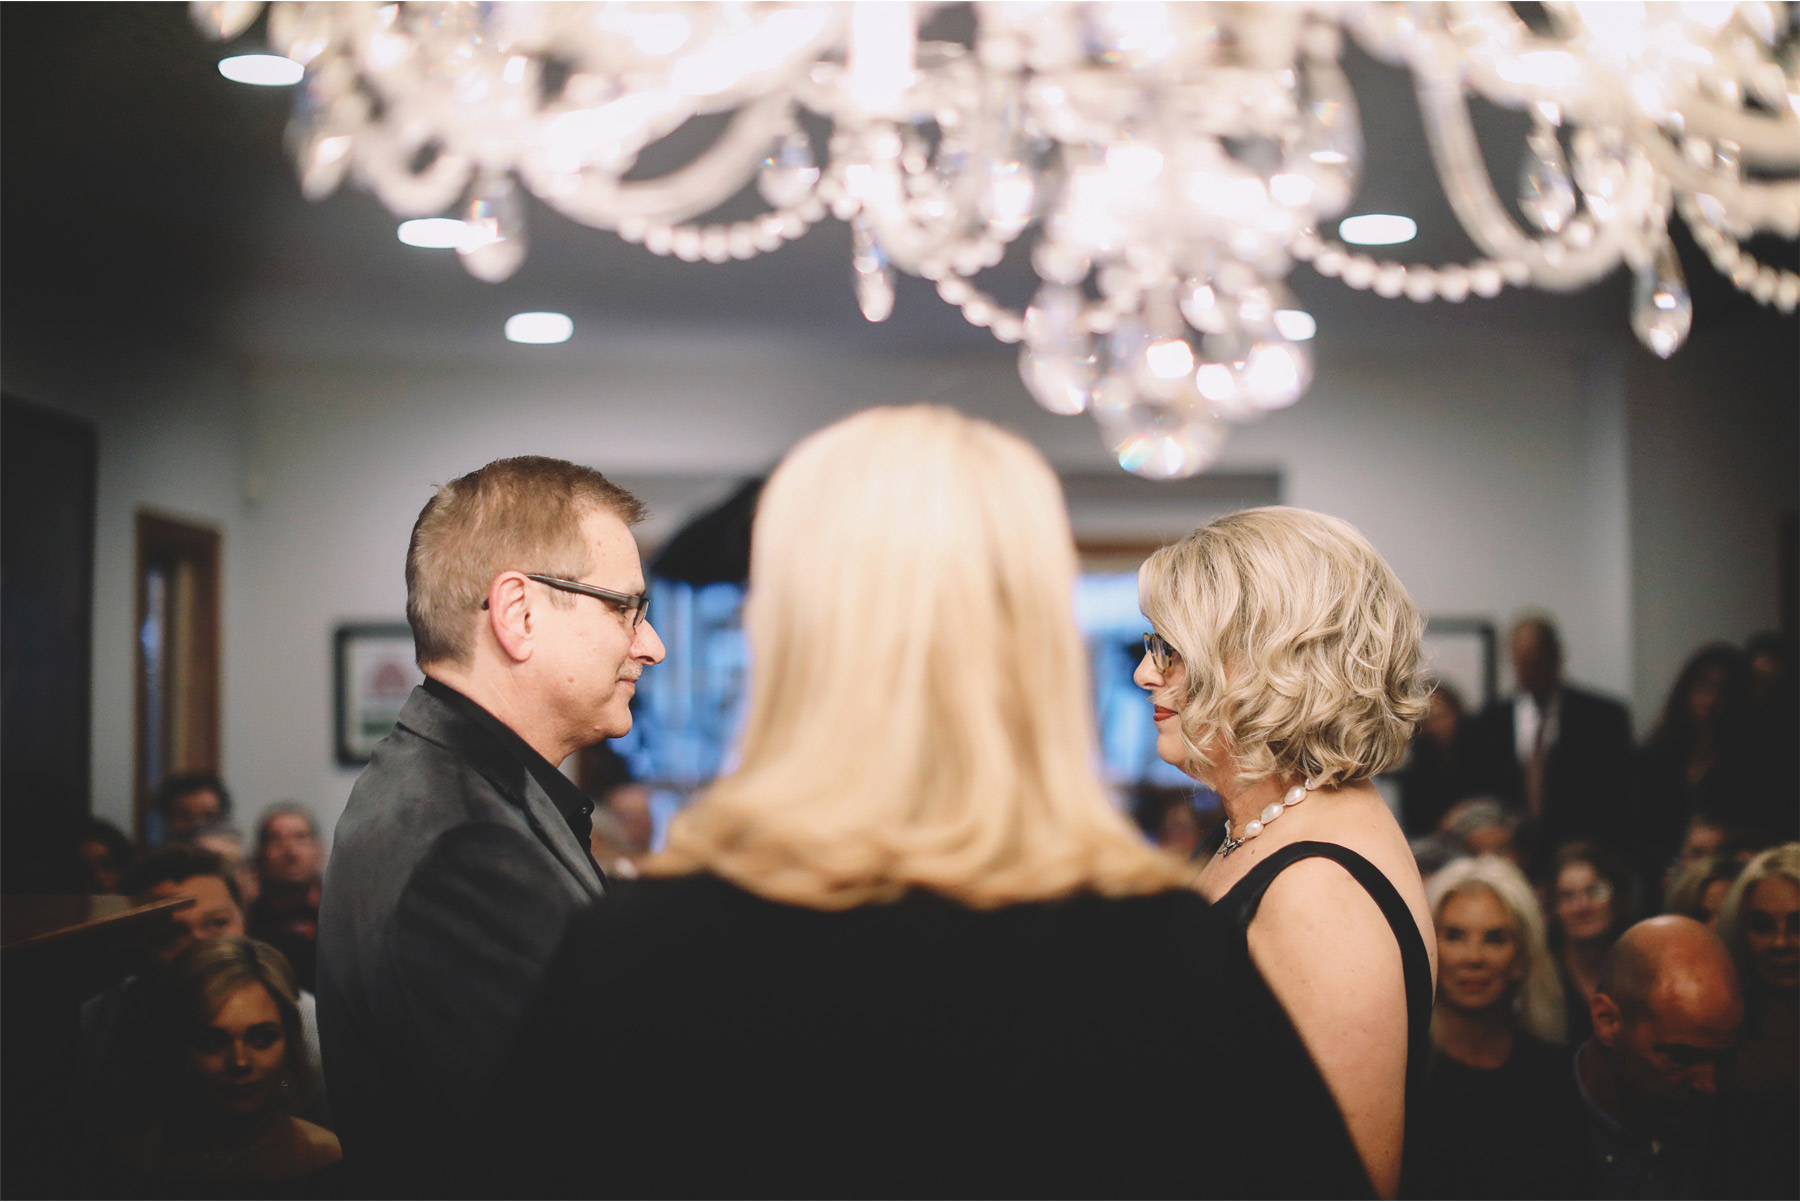 12-Minneapolis-Minnesota-Wedding-Photography-by-Vick-Photography-Home-Wedding-Ceremony-Joan-and-Tim.jpg